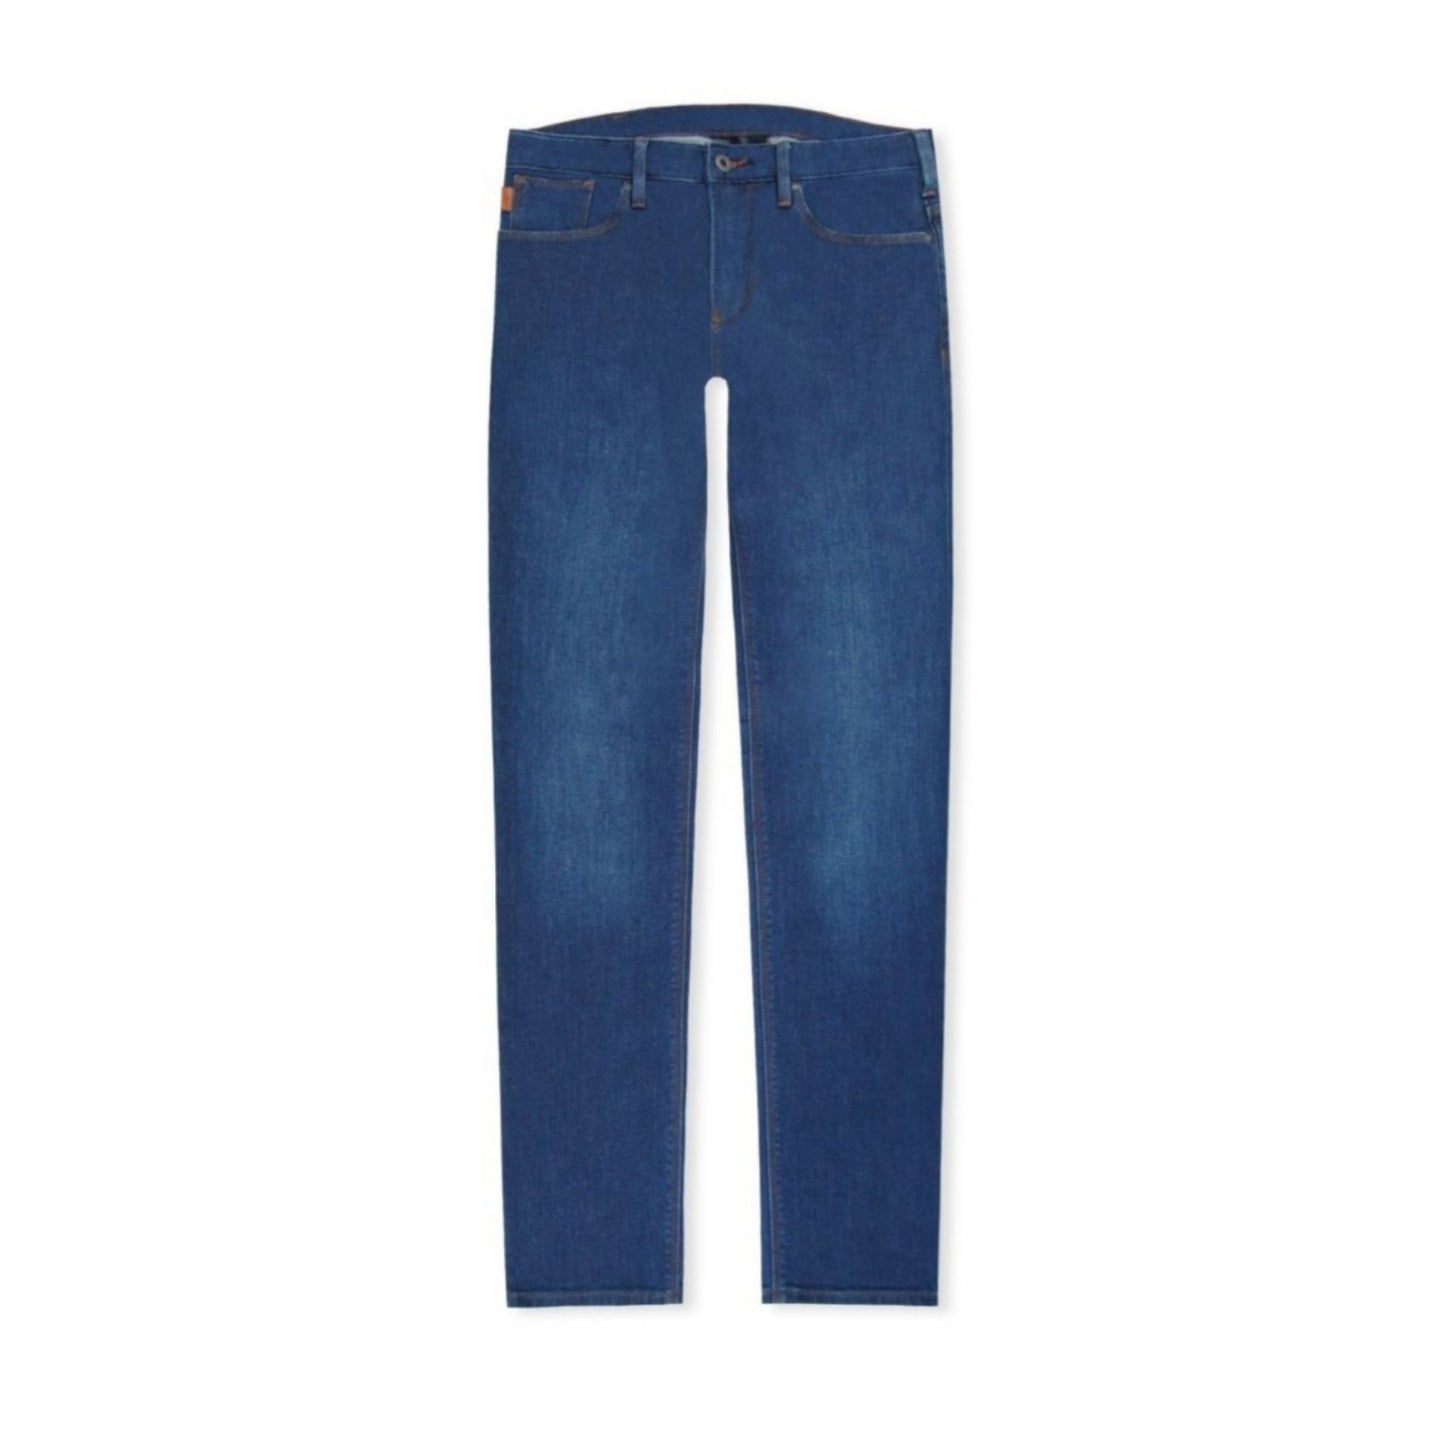 Emporio Armani J06 Slim Jeans - Denim Blue